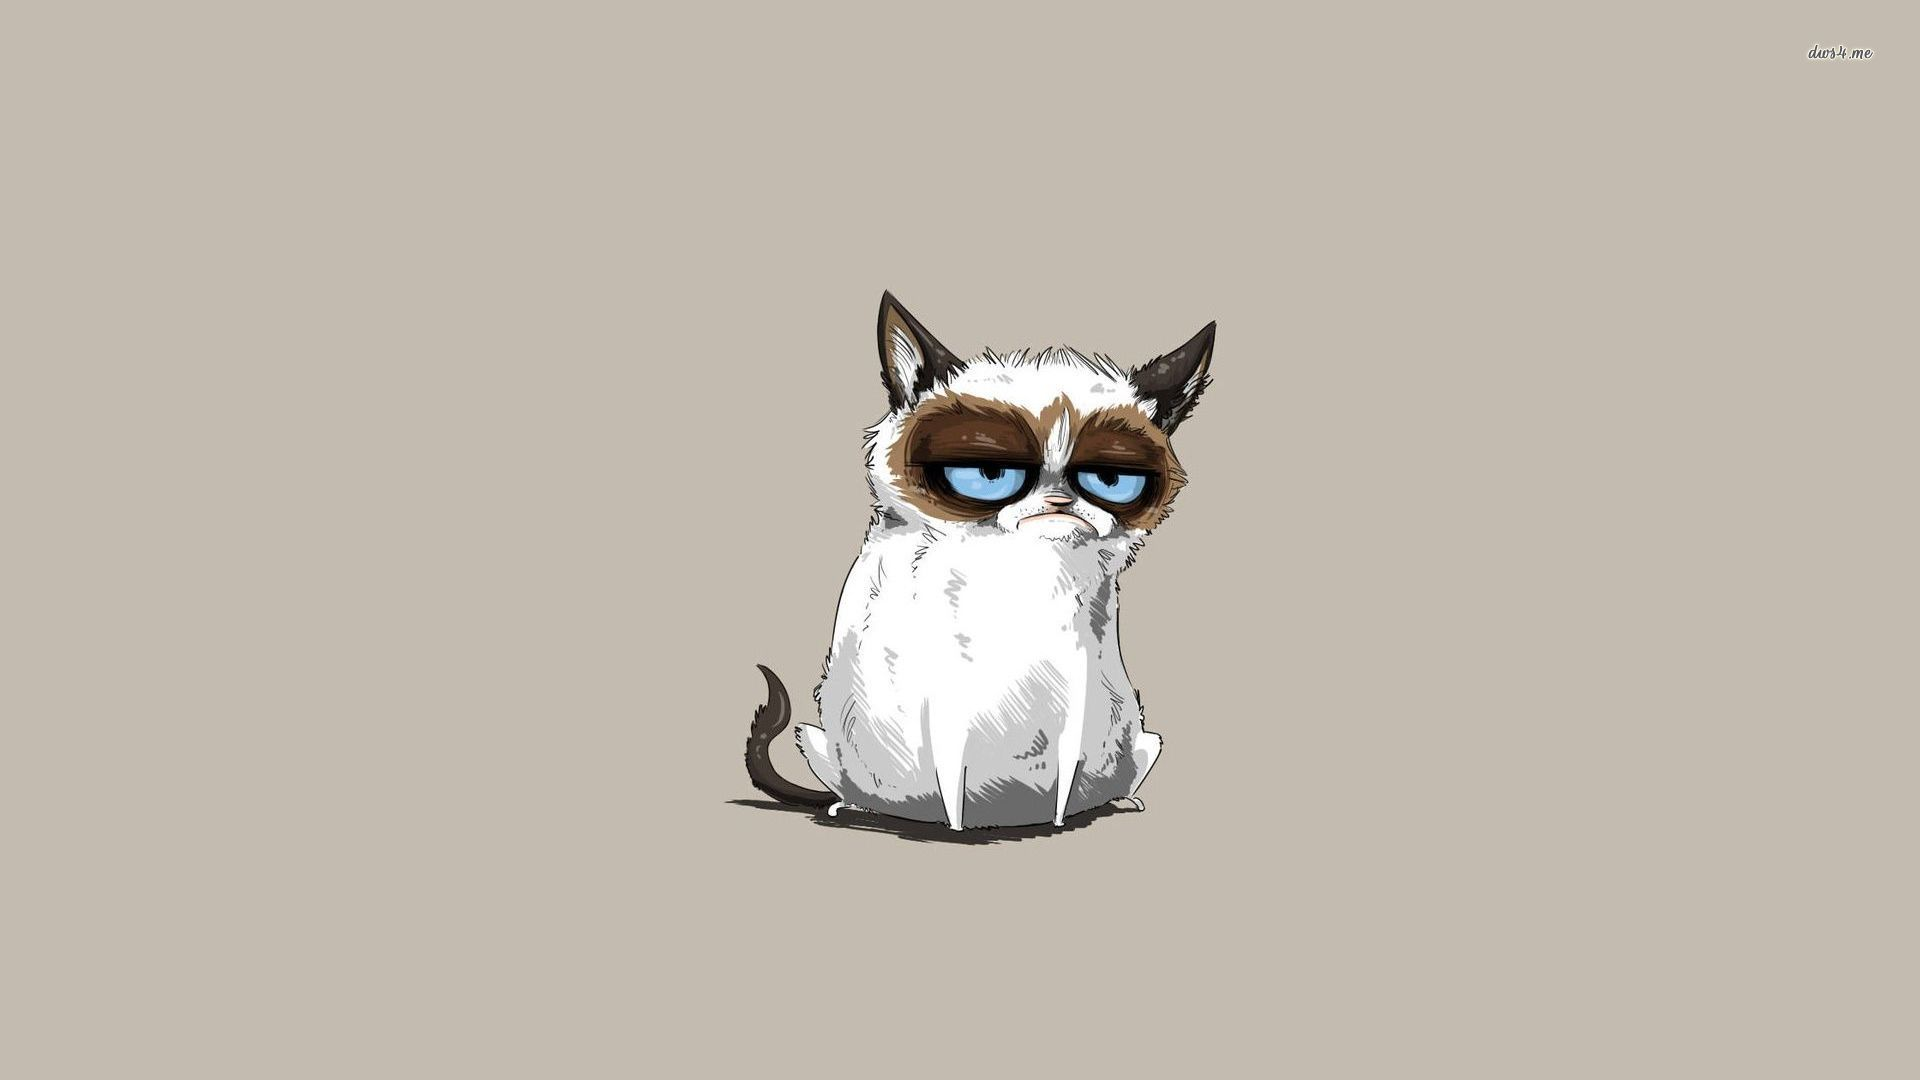 Grumpy Cat Wallpaper Background with HD Desktop 1920x1080 px 56.30 KB | Phone Wallpaper in 2019 ...